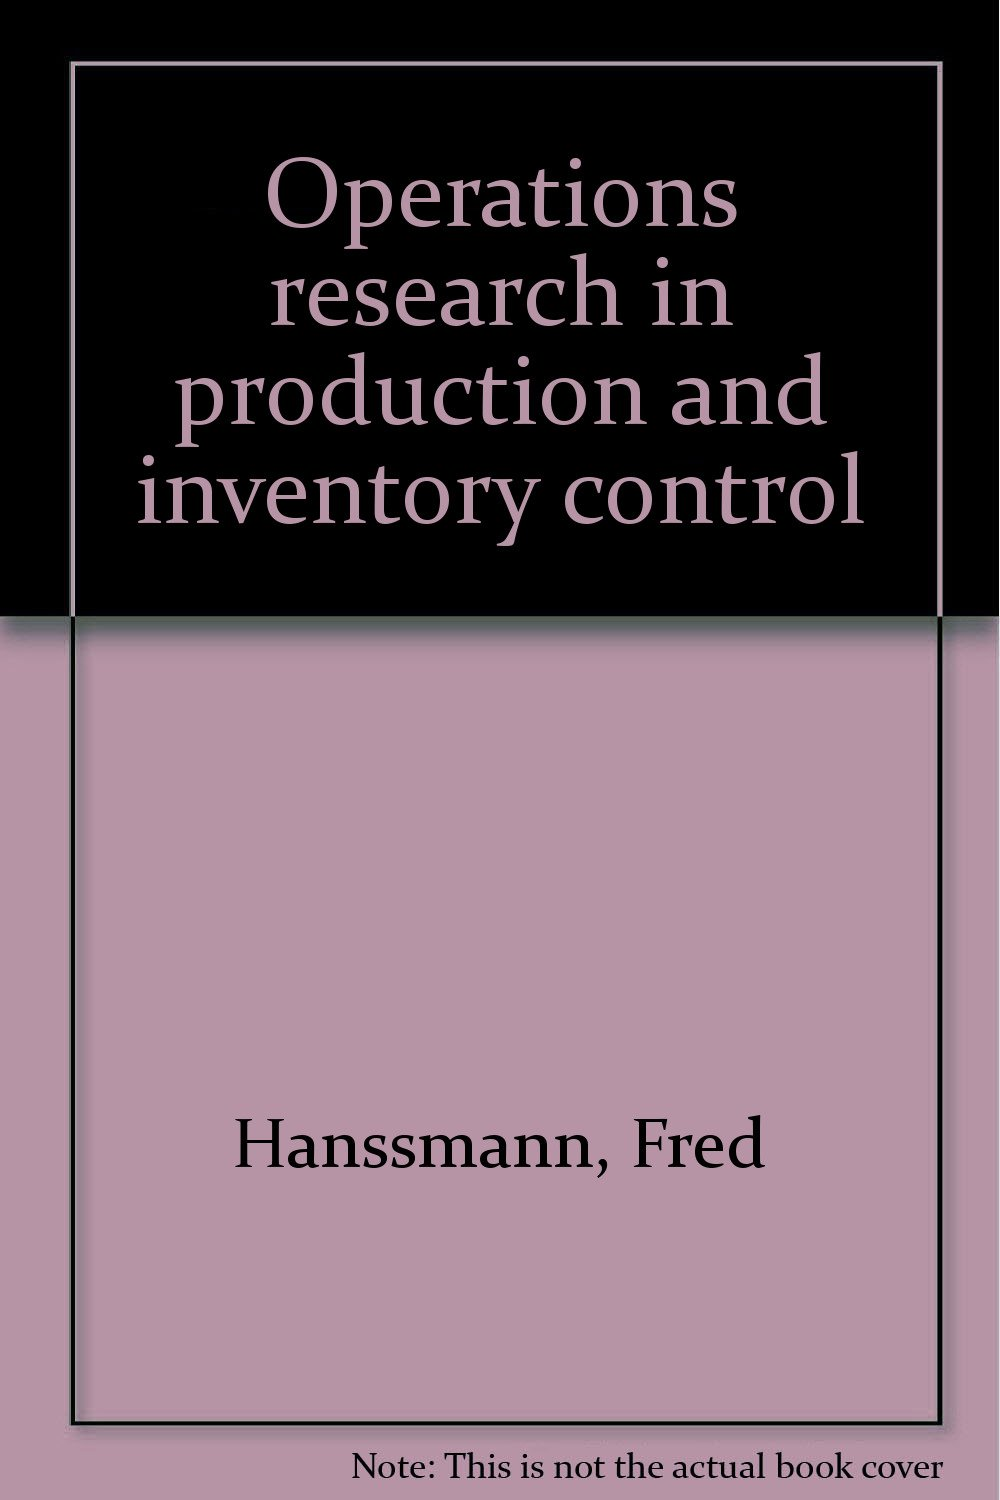 Operations Research in Production and Inventory Control